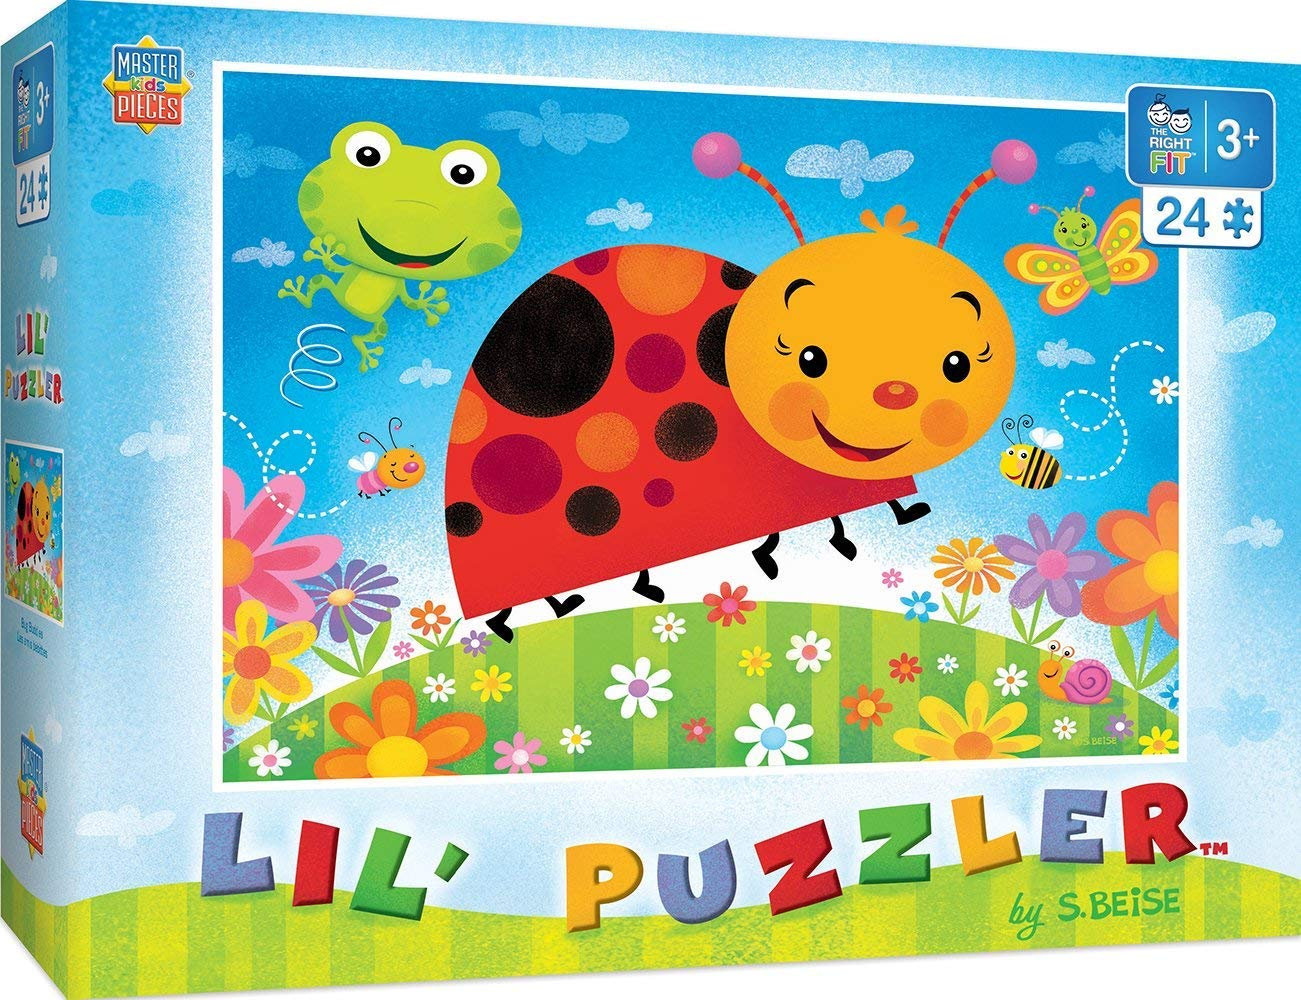 MasterPieces Lil Puzzler Bug Buddies Right Fit Puzzle, 24-Piece